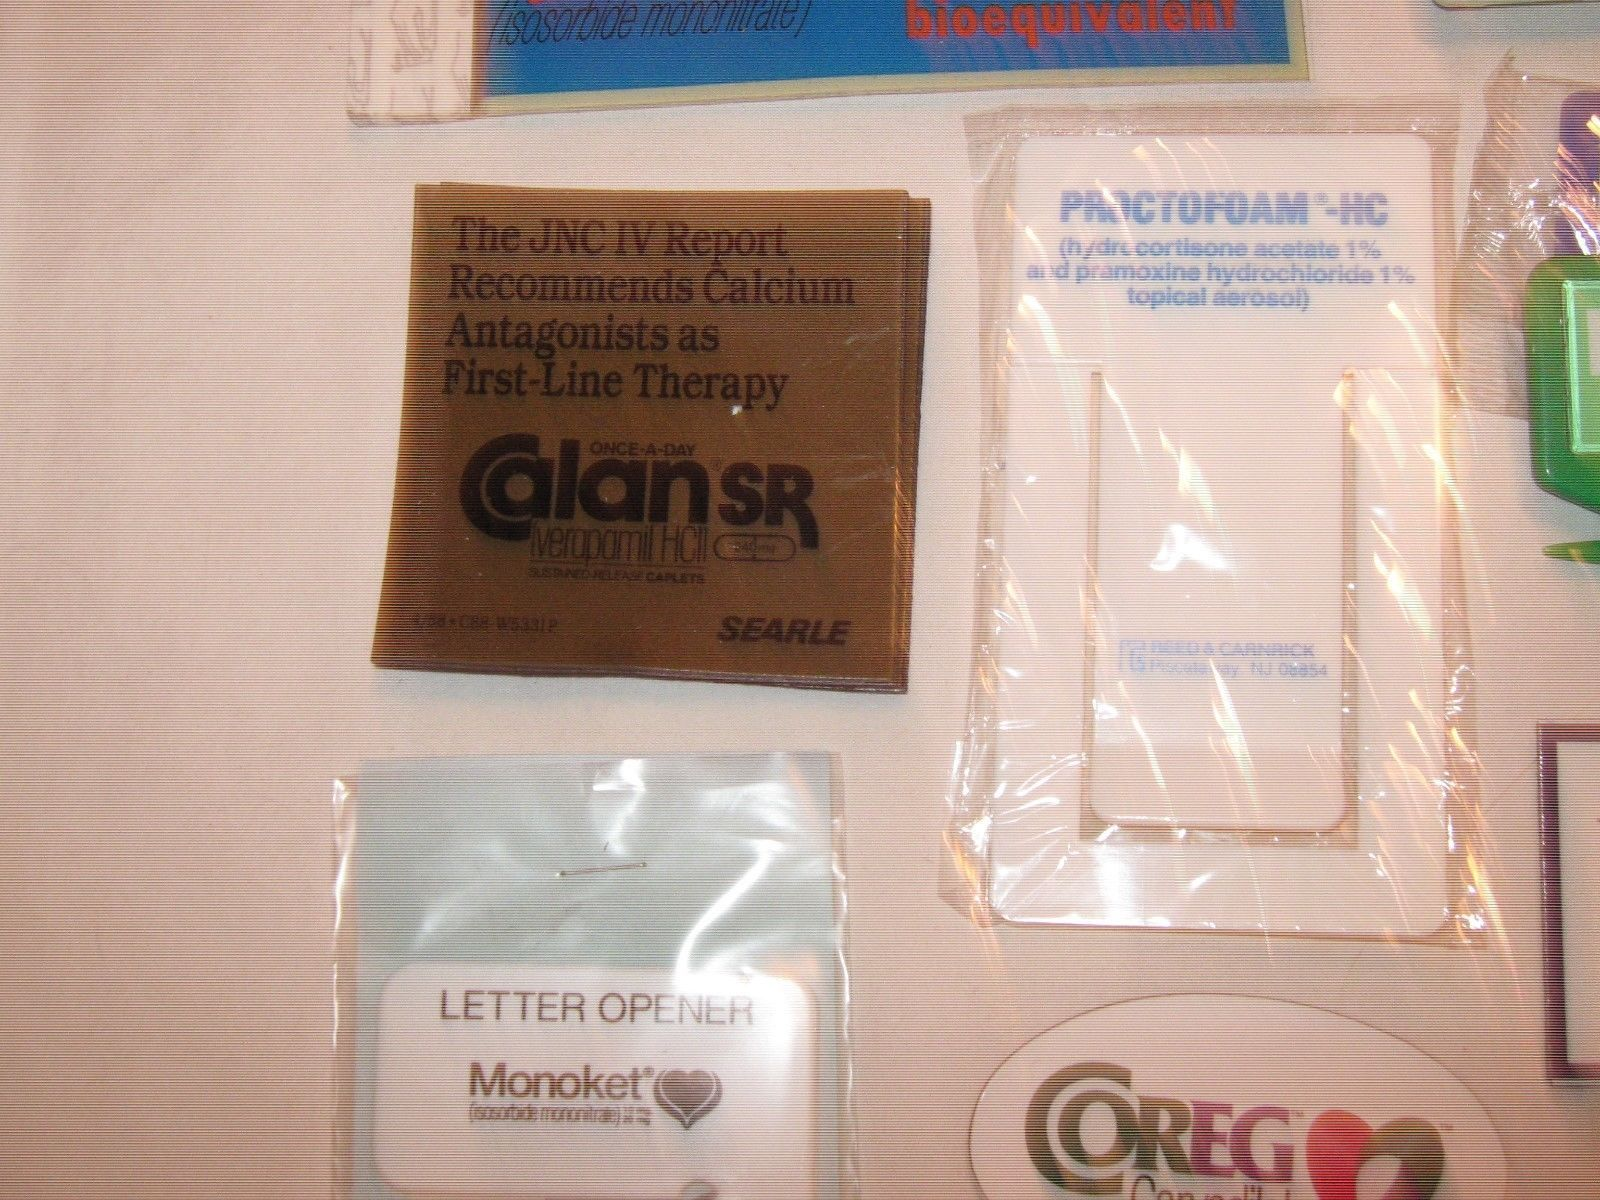 Rx, Pharmacy Promotional Items, Mixed Lot image 9